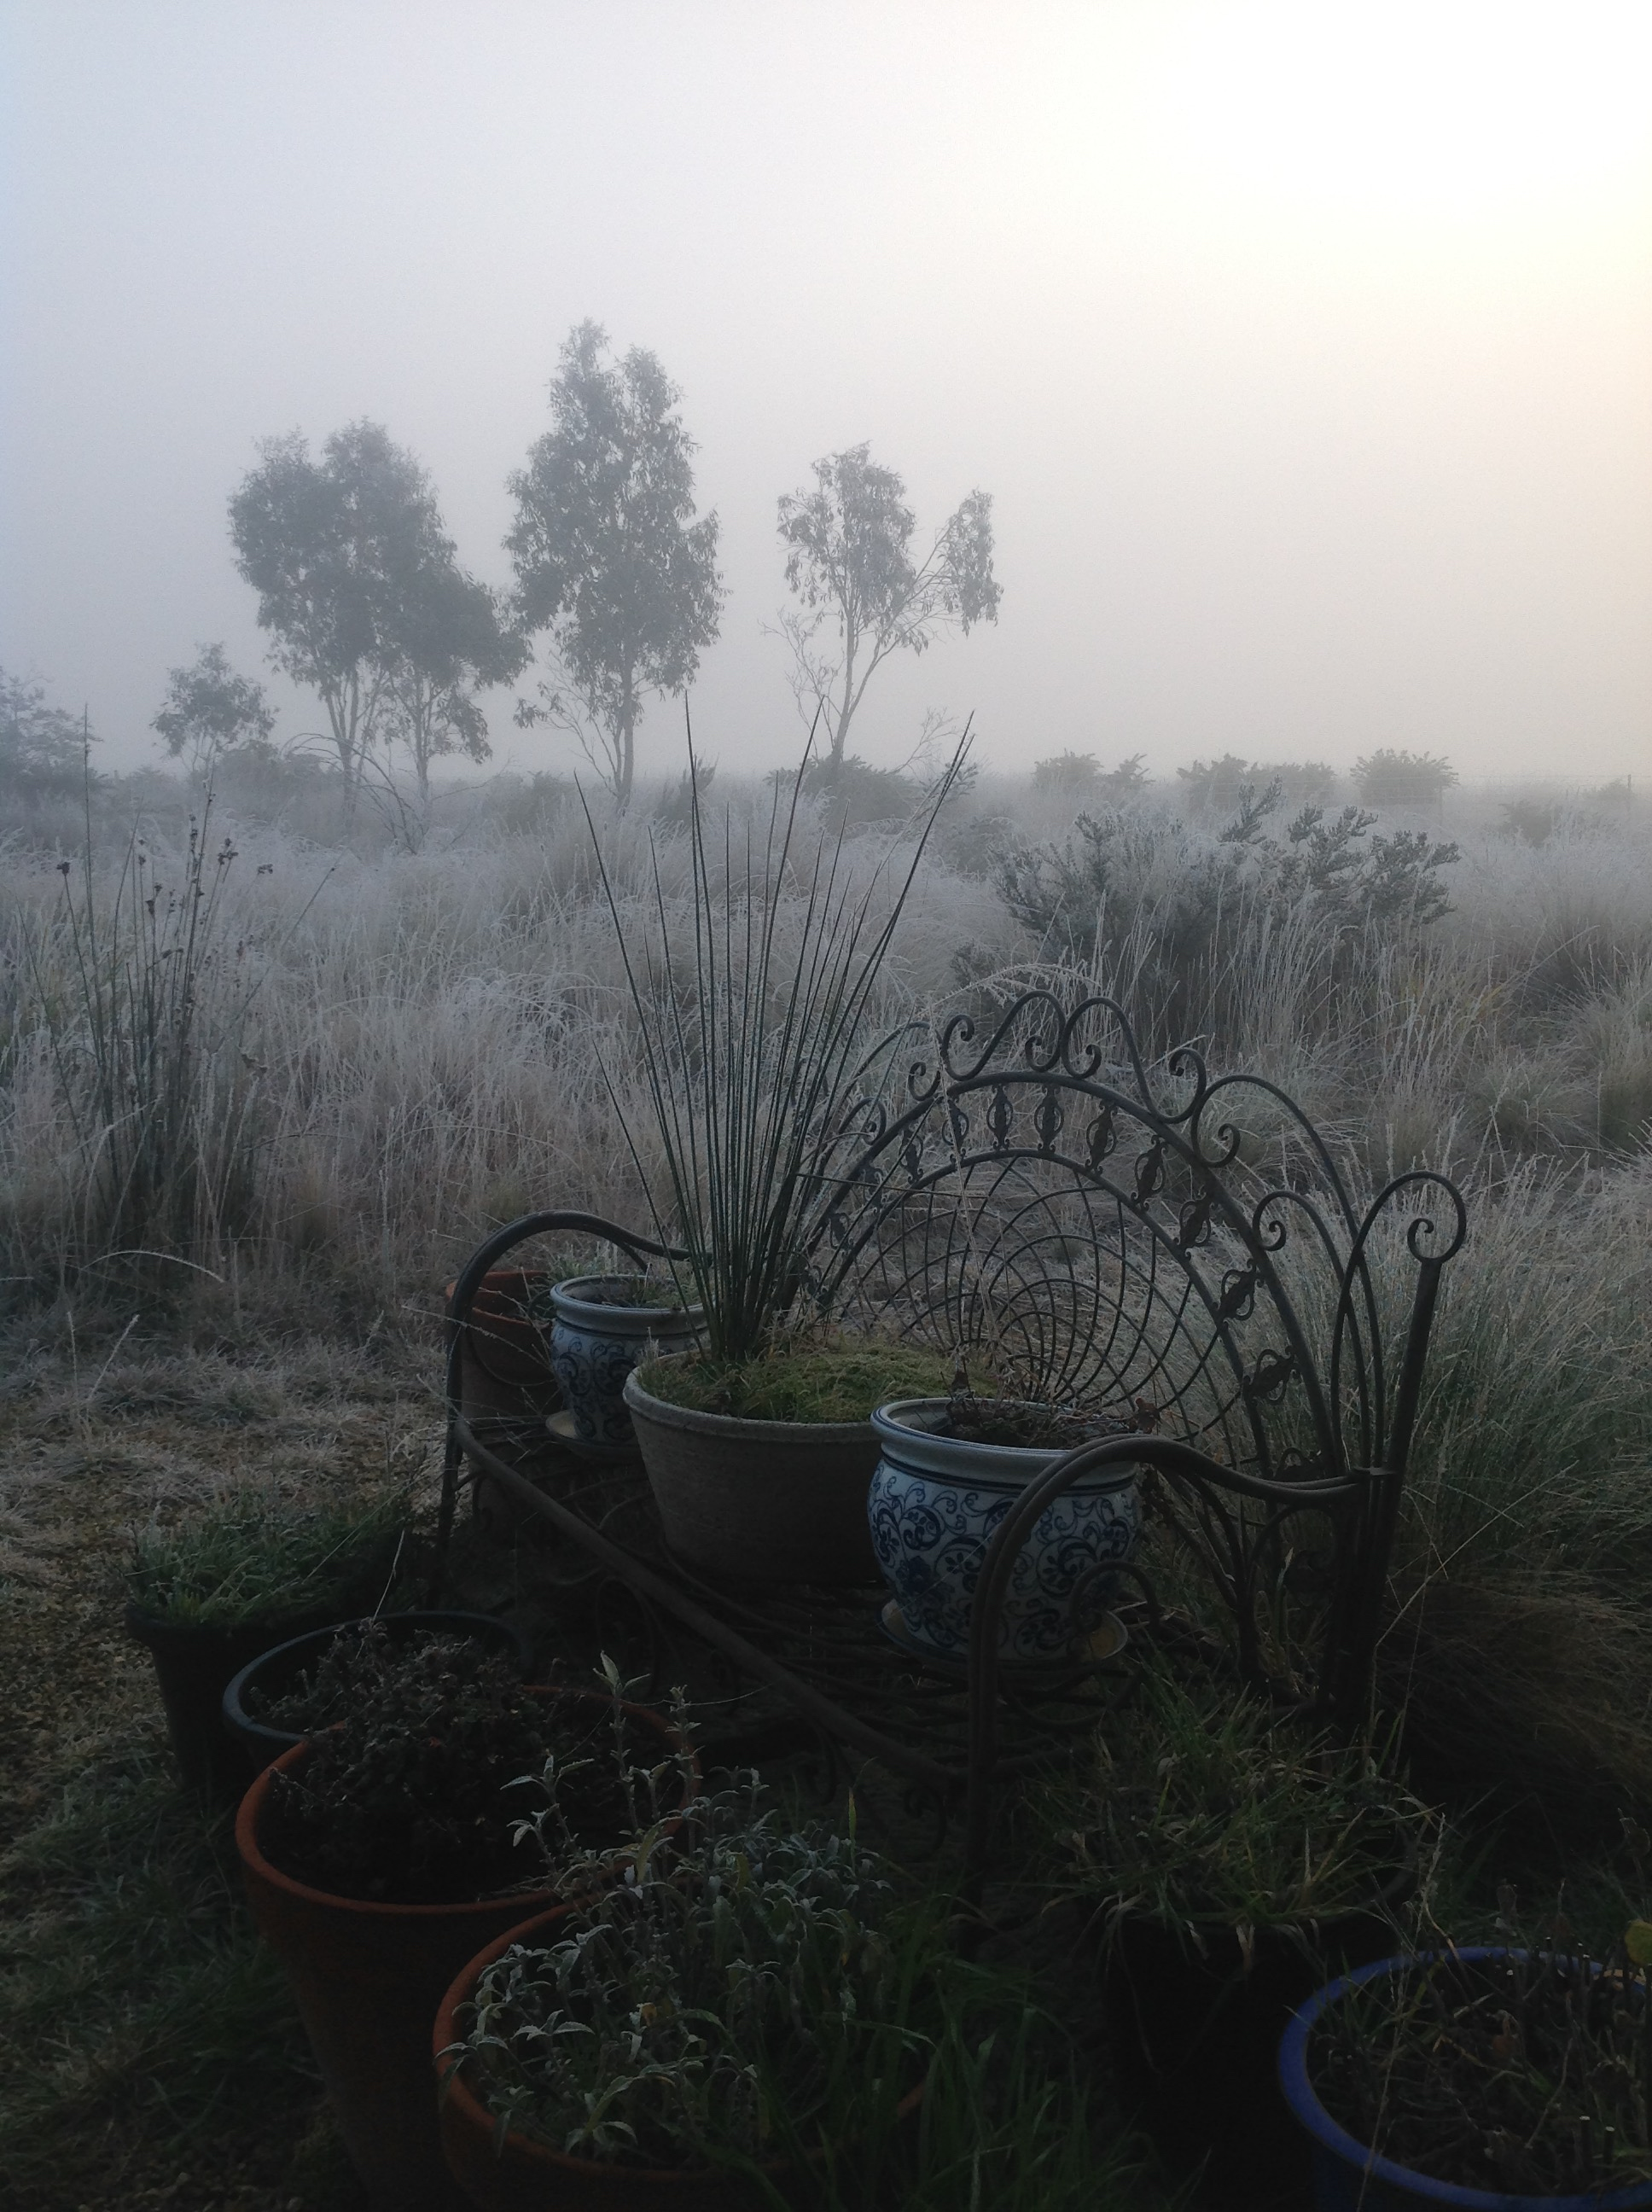 Outside my front door on a foggy, frosty -7 degree morning last week.